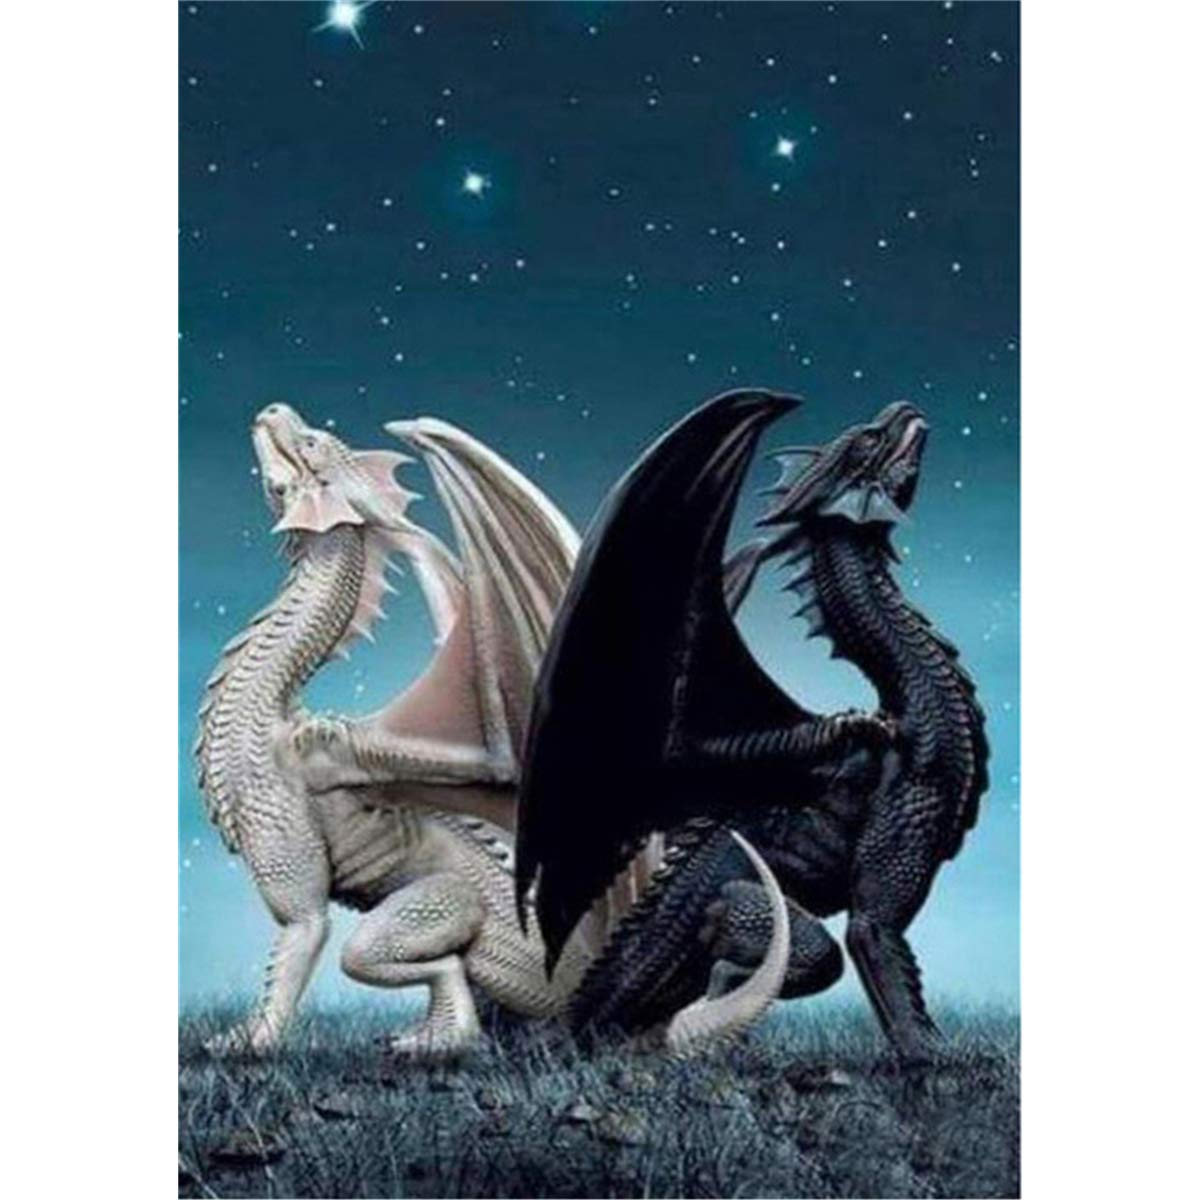 5D Diamond Painting Full Drill, Dragon Diamond Painting Kits for Adults Kids Crystal Rhinestone DIY Arts Craft for Home Wall Decor (White Black Dragon, 11.8x15.7inch) by feilin (Image #1)